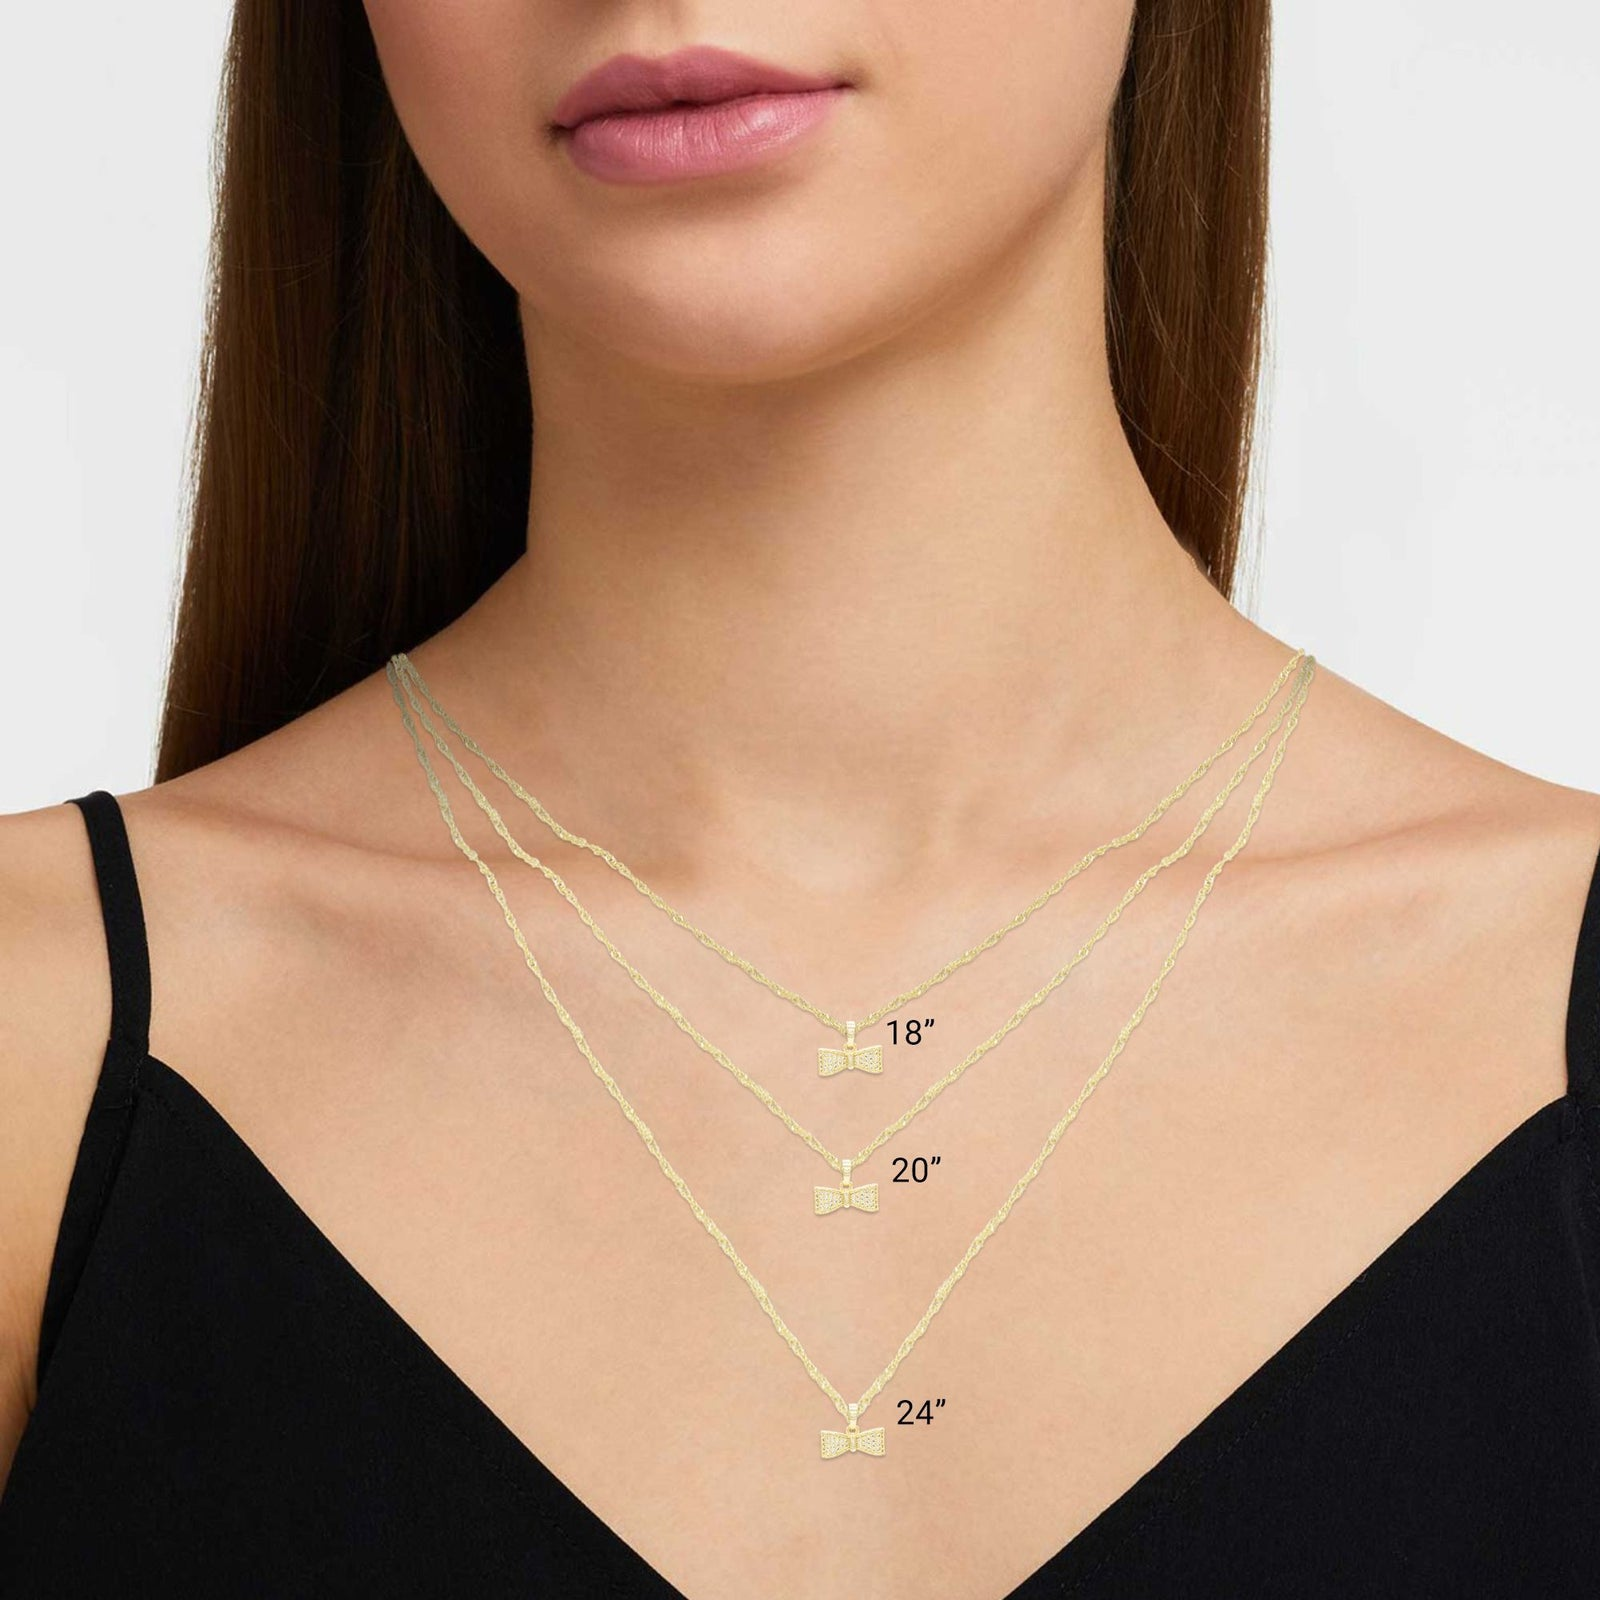 Bow Tie Cubic Zirconia Pendant With Necklace Set 14K Gold Filled